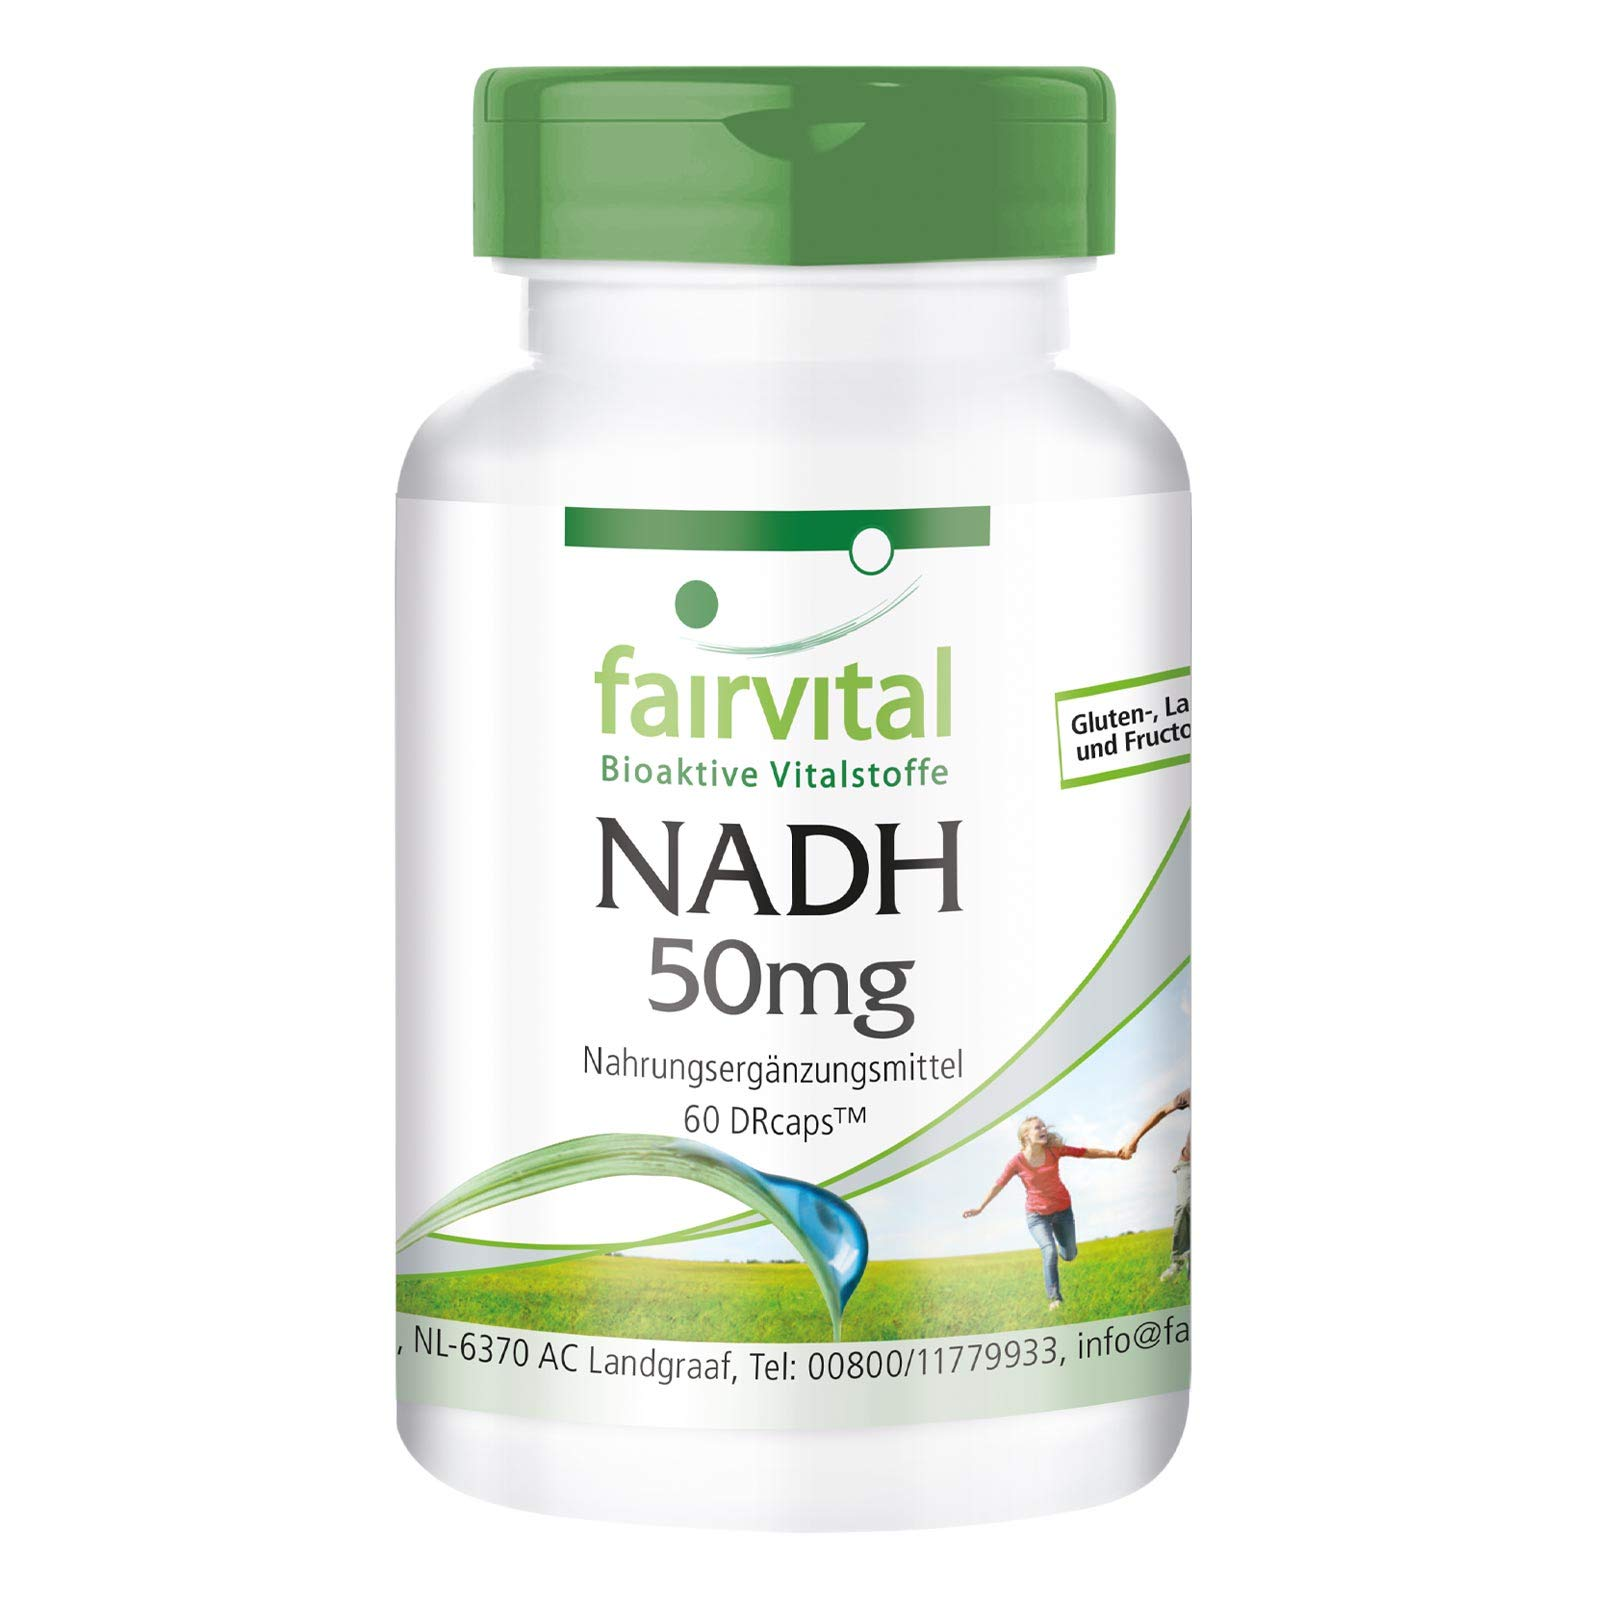 NADH 50mg - Vegan - HIGH Dosage - 60 Capsules - Delayed Release Due to DRCaps